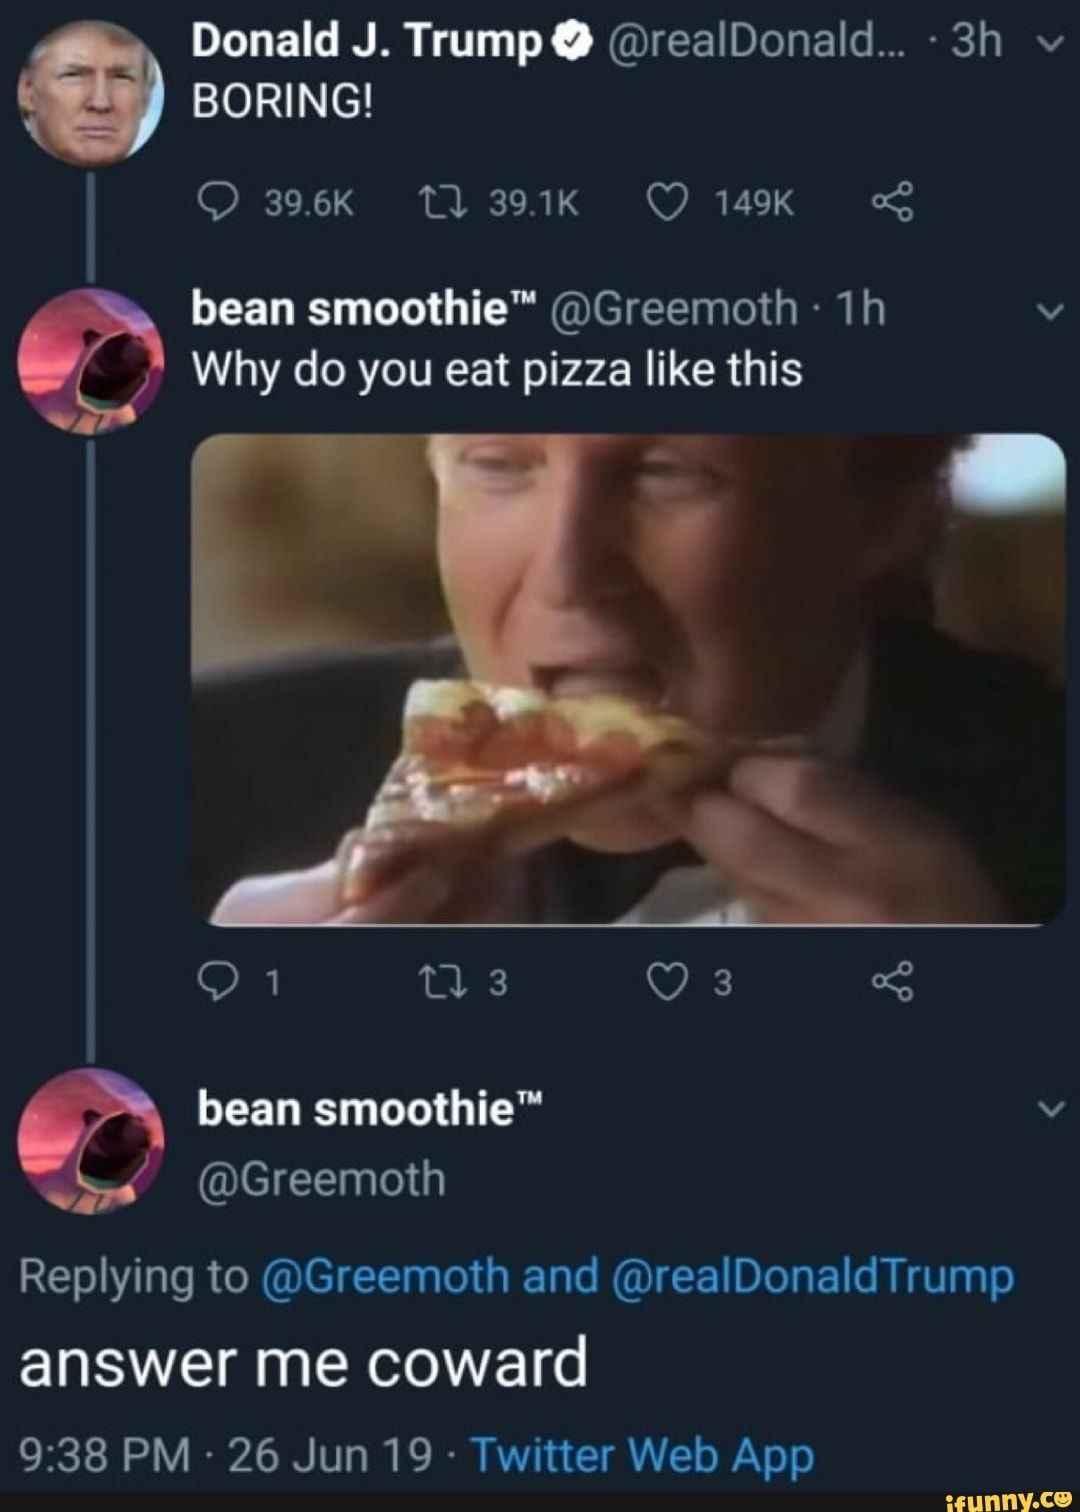 Boring Bean Smoothie Greemoth 1h V Why Do You Eat Pizza Like This V Replying To Greemoth And Realdonaldtrump Answer Me Coward 9 38 Pm 26 Jun 19 Twi Haha Funny Stupid Memes Tumblr Funny